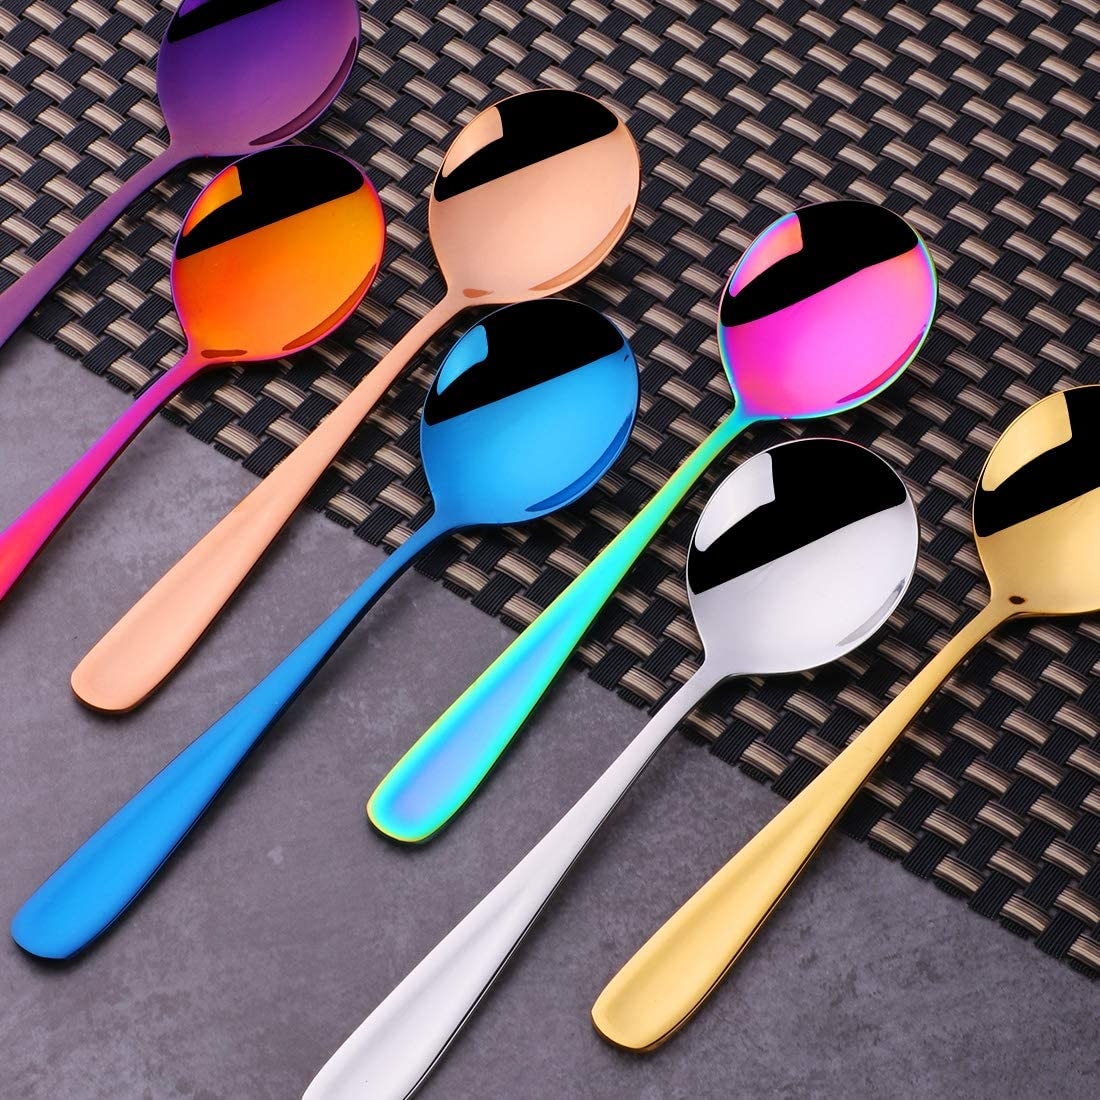 8 PCS Soup Spoon Table Spoon 6 Inch for Home Office Use and Restaurant Use